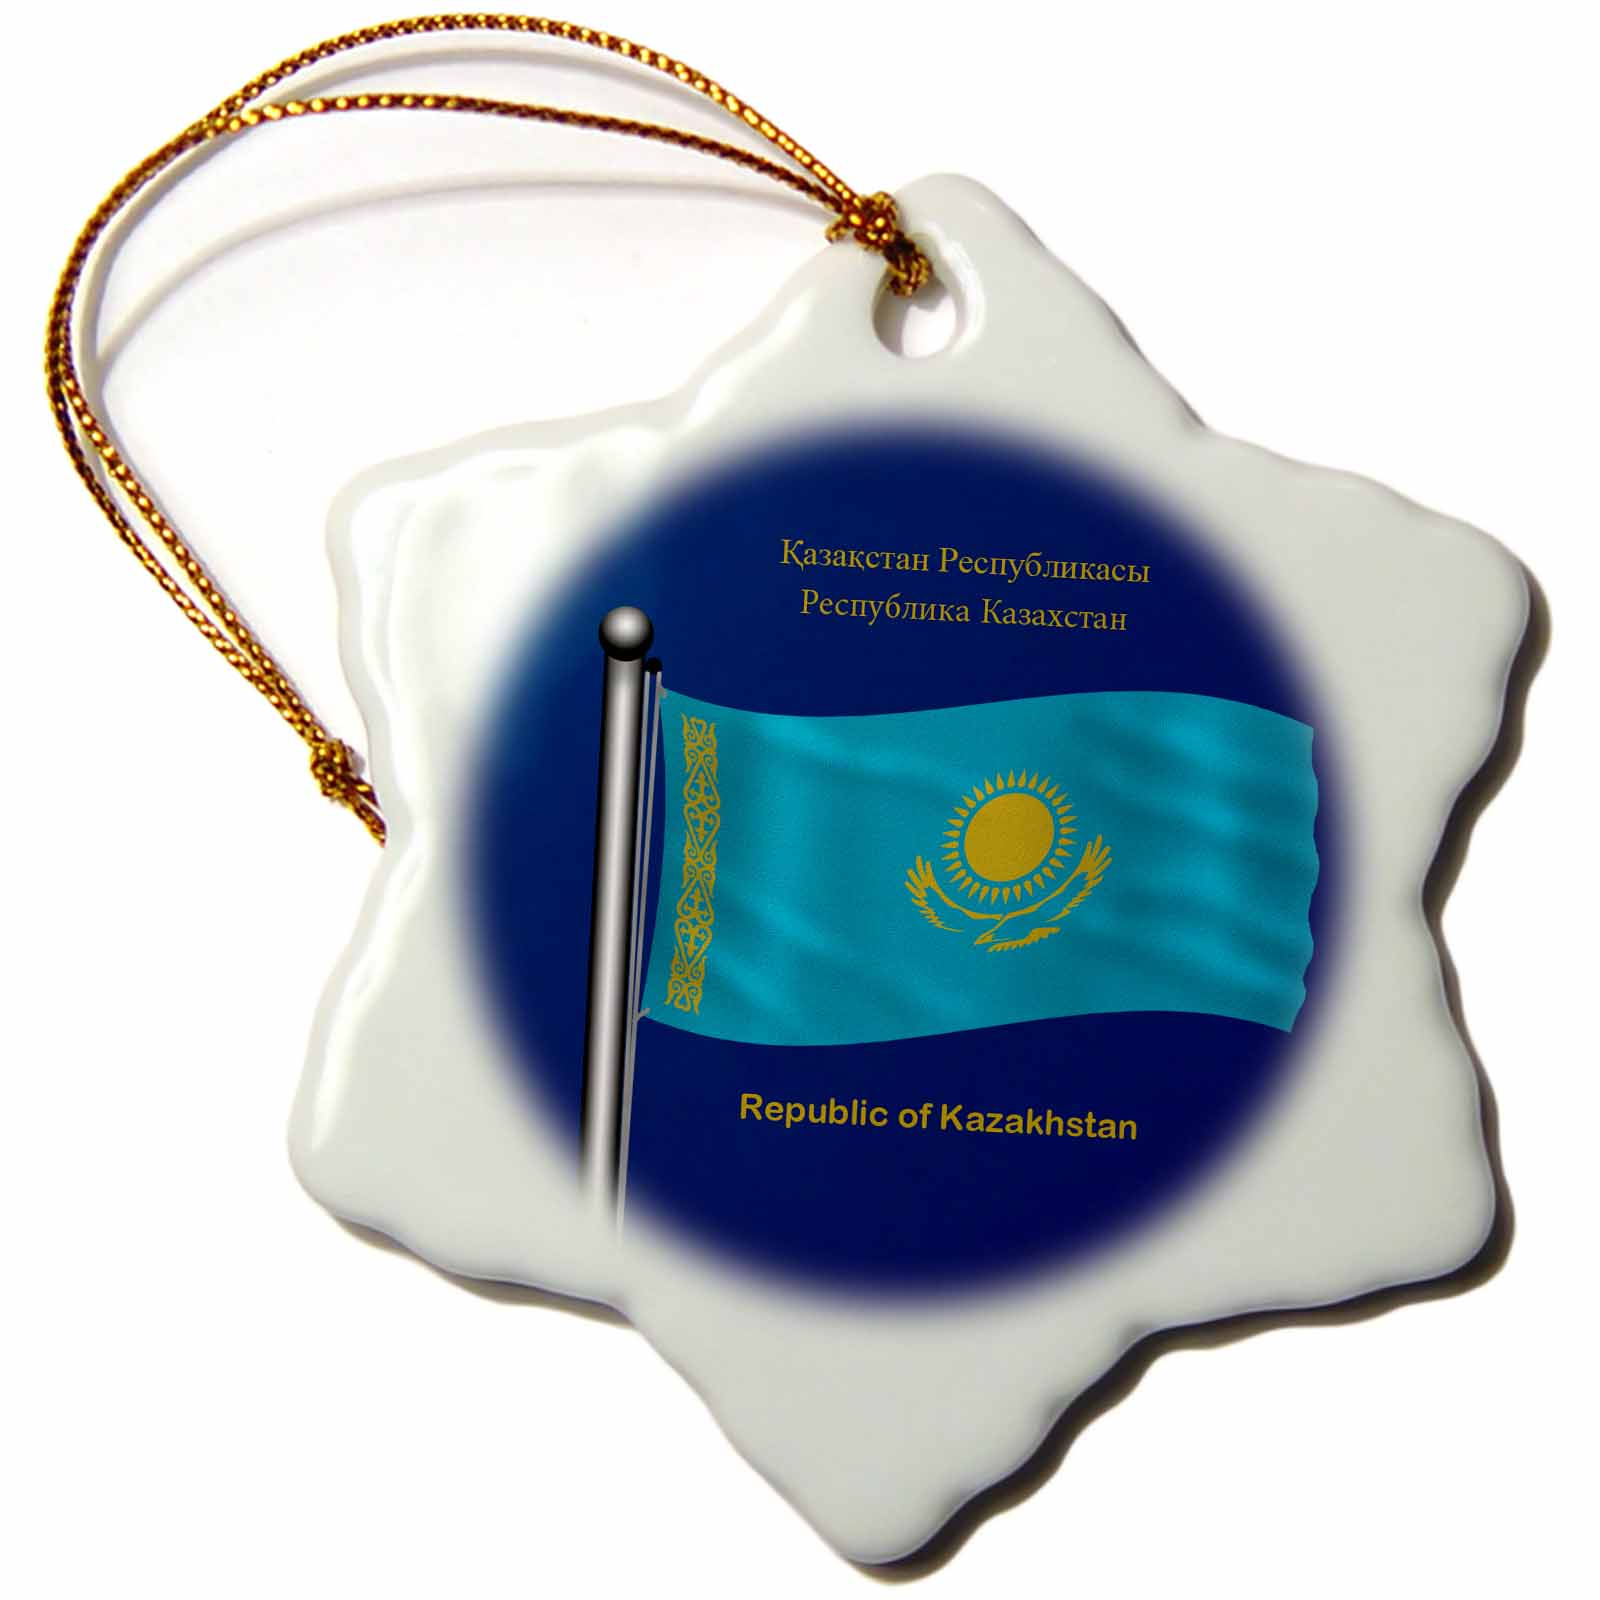 3dRose The flag of Kazakhstan on blue background with Republic of Kazakhstan in English, Russian and Kazakh, Snowflake Ornament, Porcelain, 3-inch